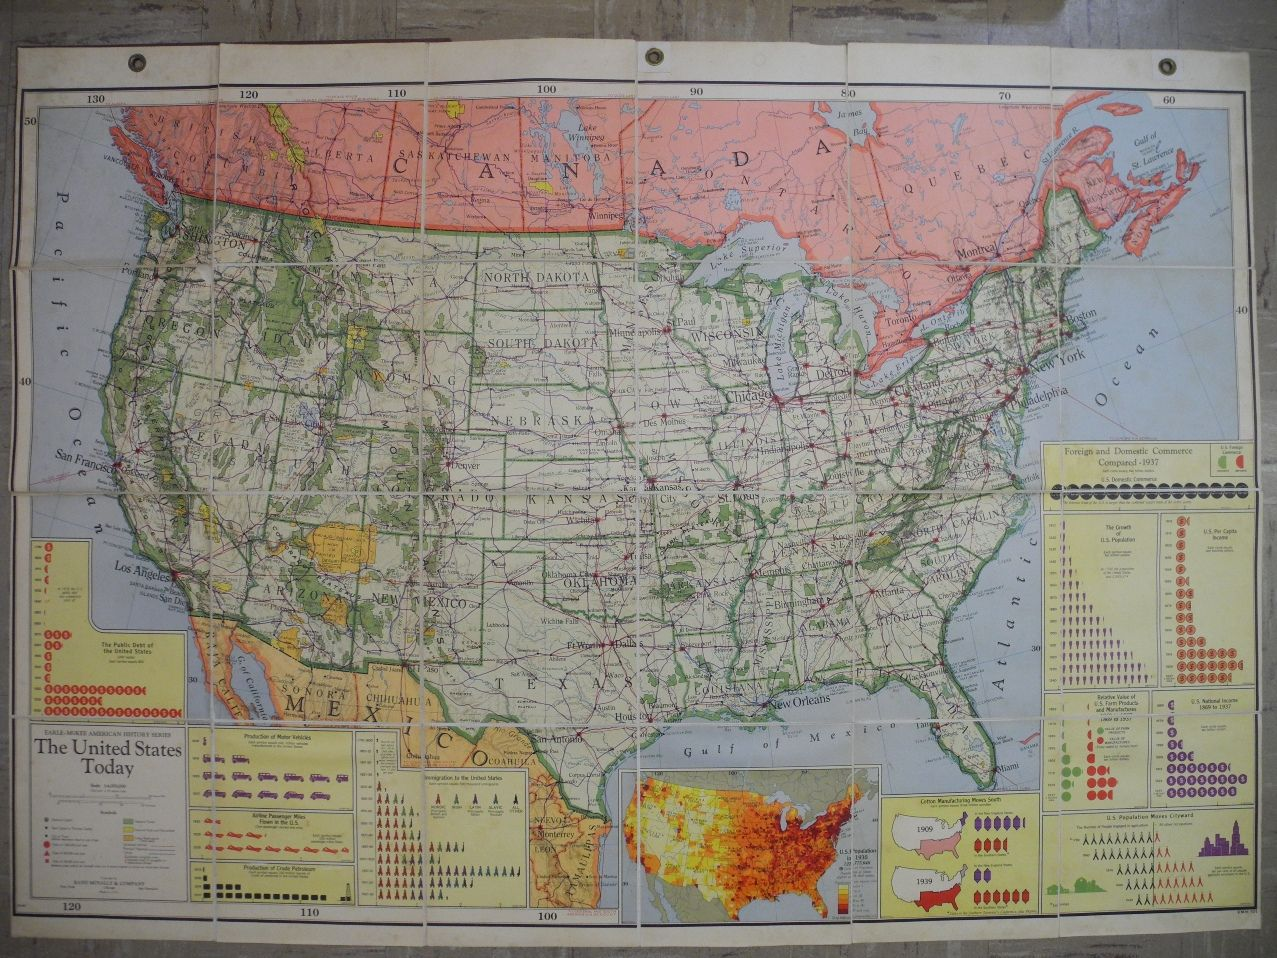 The United States Today 1937 Striking Wall Map Of The United